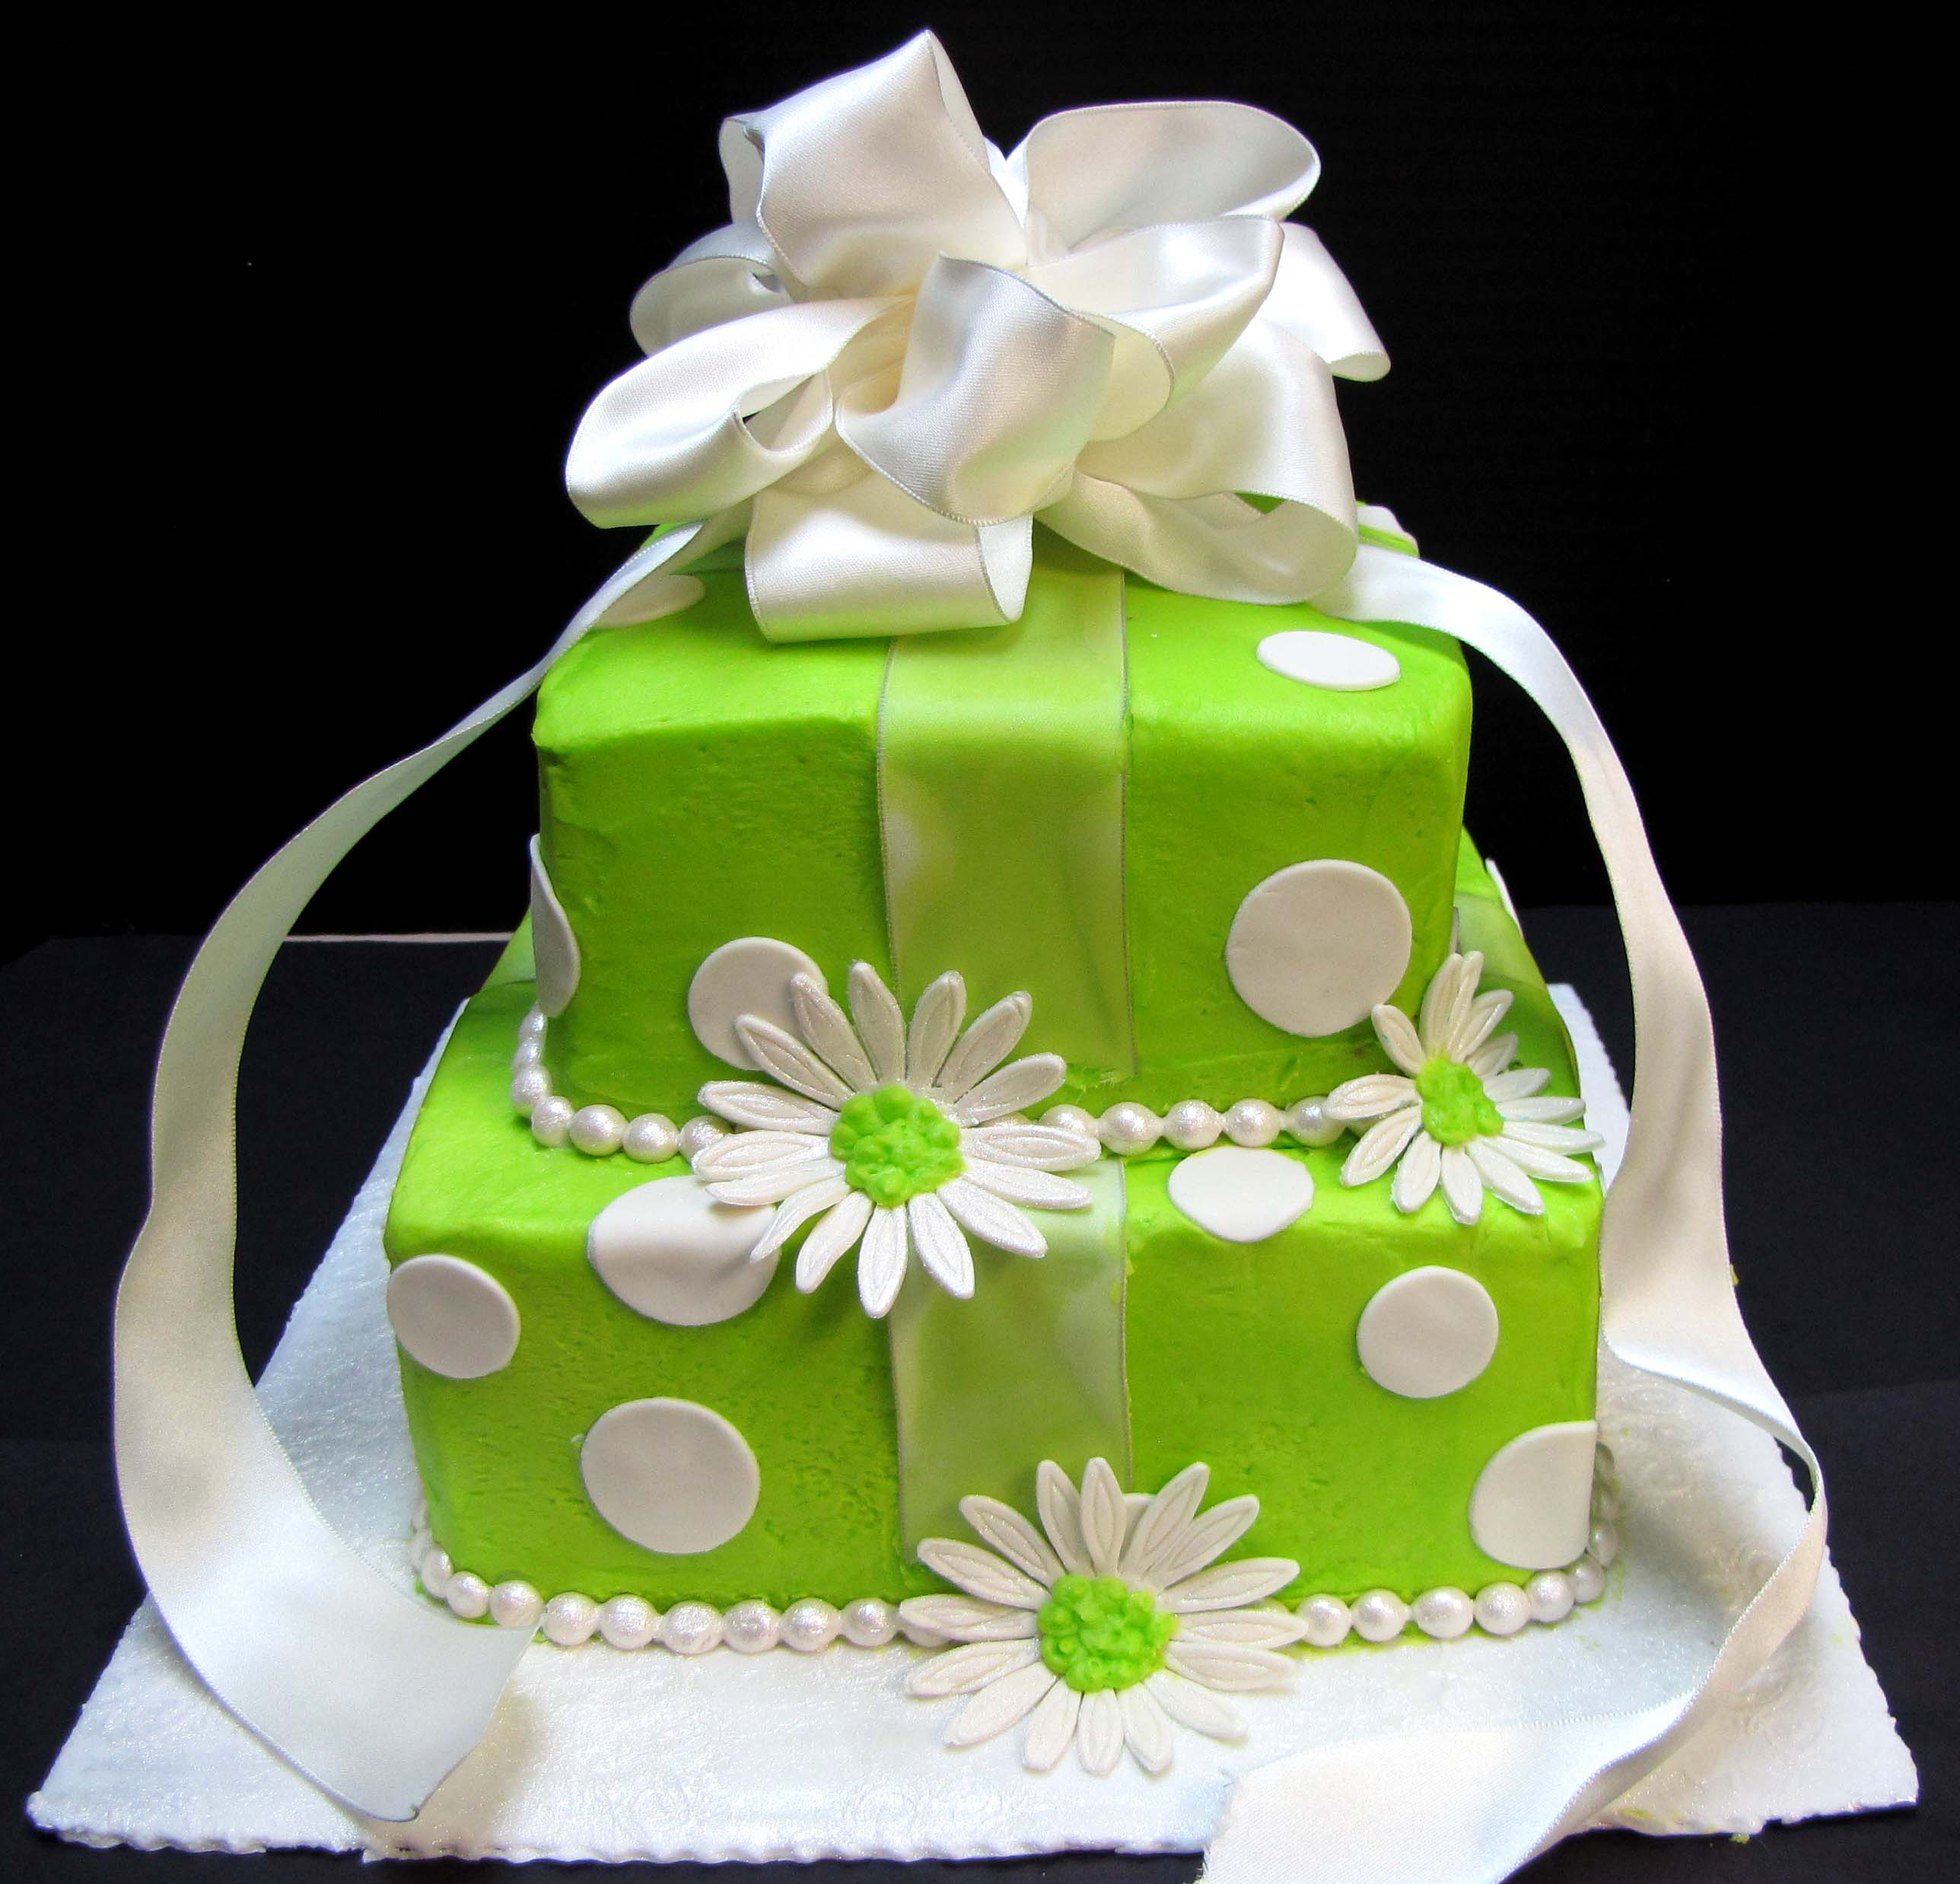 35+ Awesome Image of Green Birthday Cake